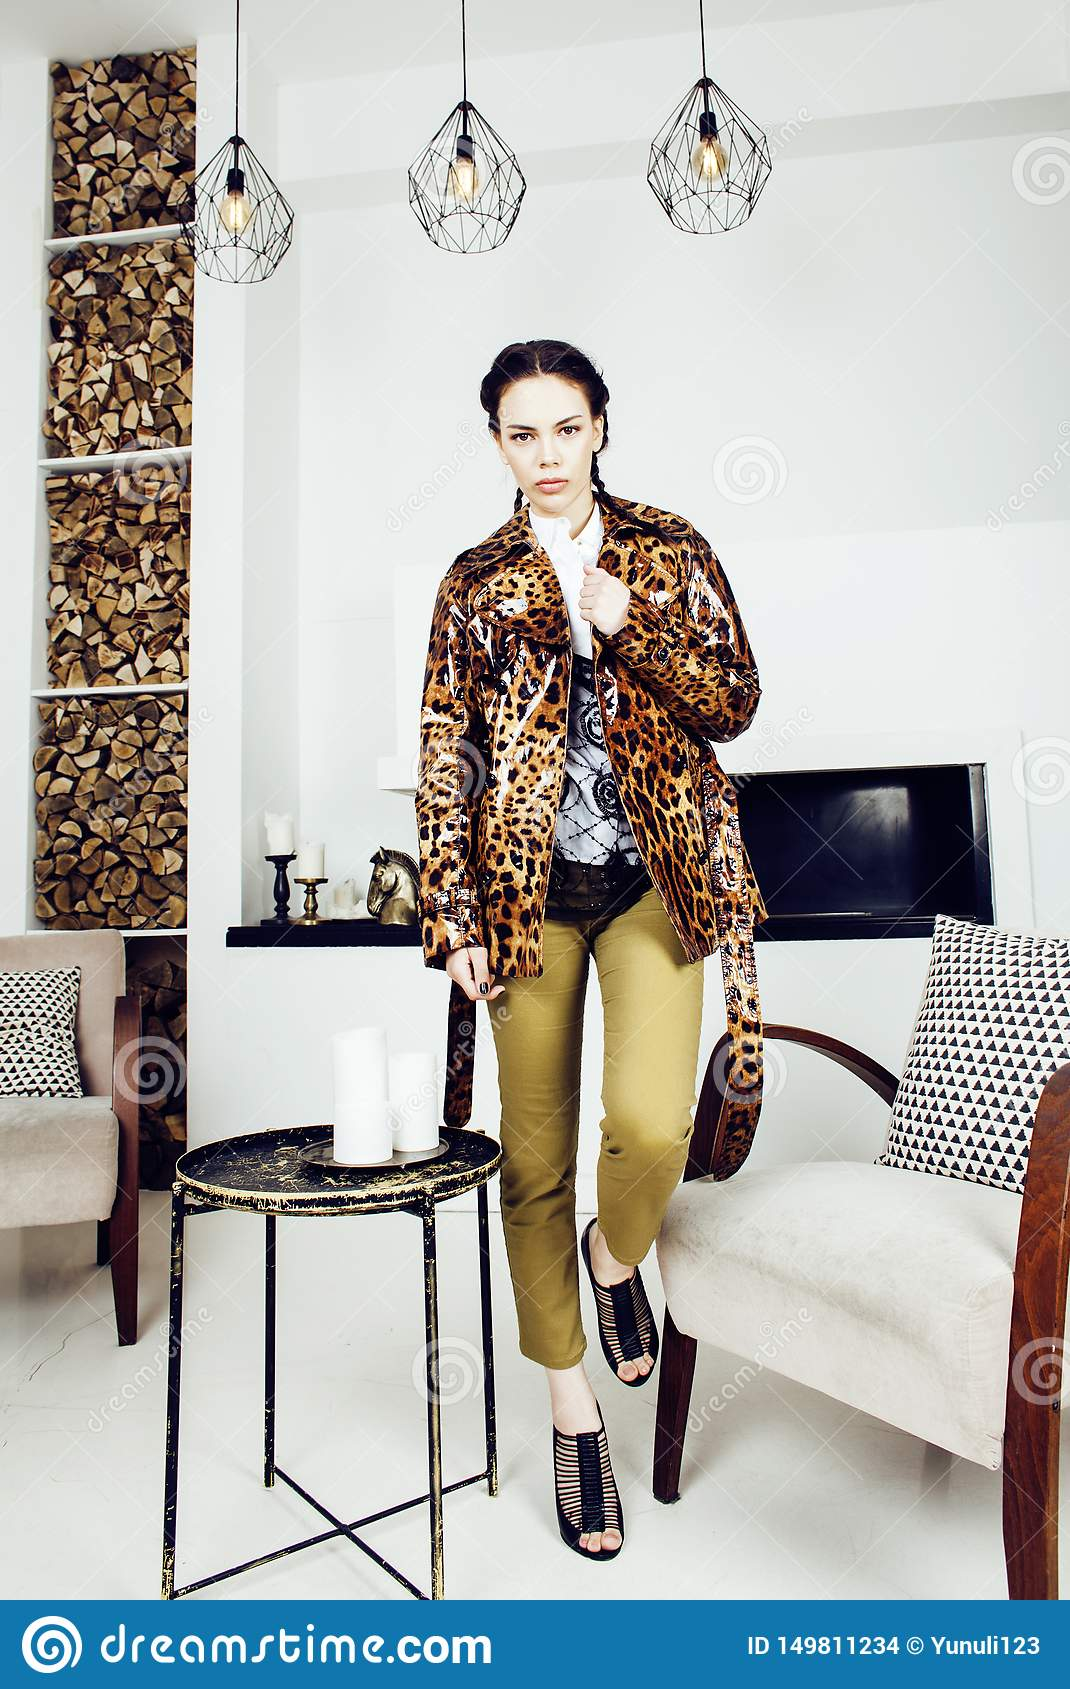 Pretty stylish woman in fashion dress with leopard print in luxury house interior, lifestyle people concept